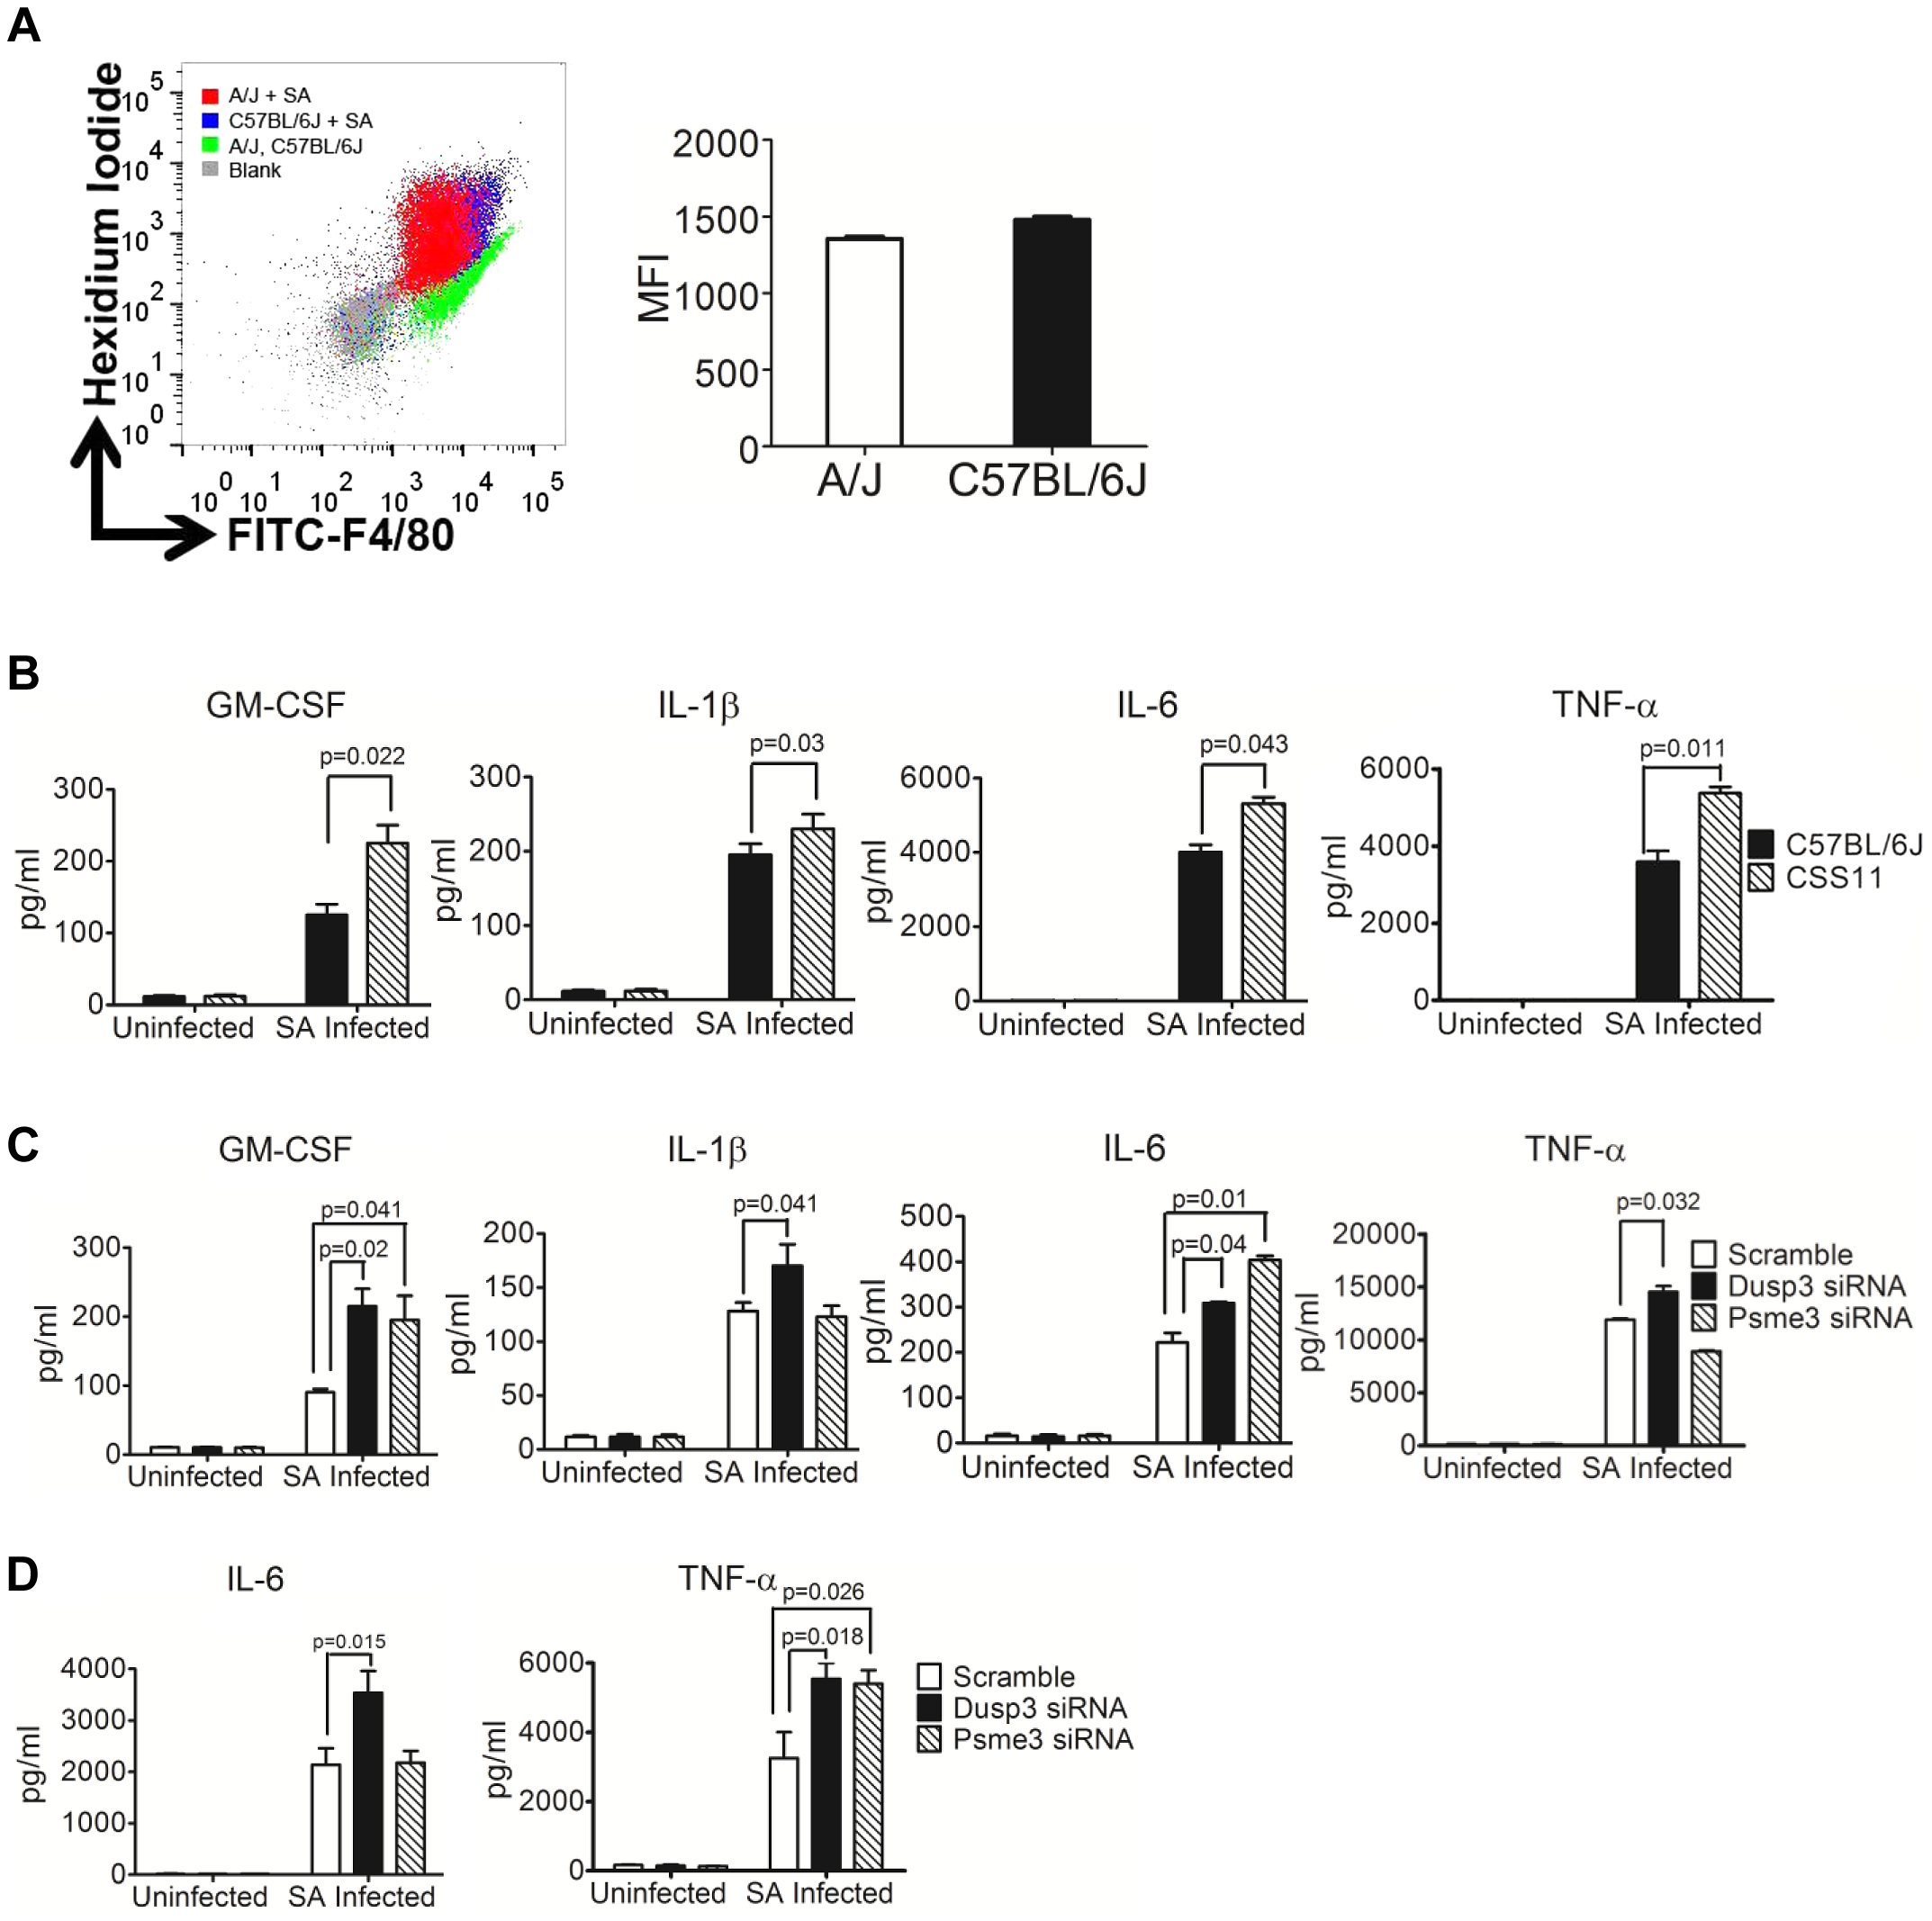 siRNA knockdown of <i>Dusp3</i> and <i>Psme3</i> result in significant elevation of cytokine production, consistent with the pattern of bone marrow derived macrophages from CSS11 as compared with C57BL/6J (GM-CSF, IL-1β, IL-6 and TNF-α).